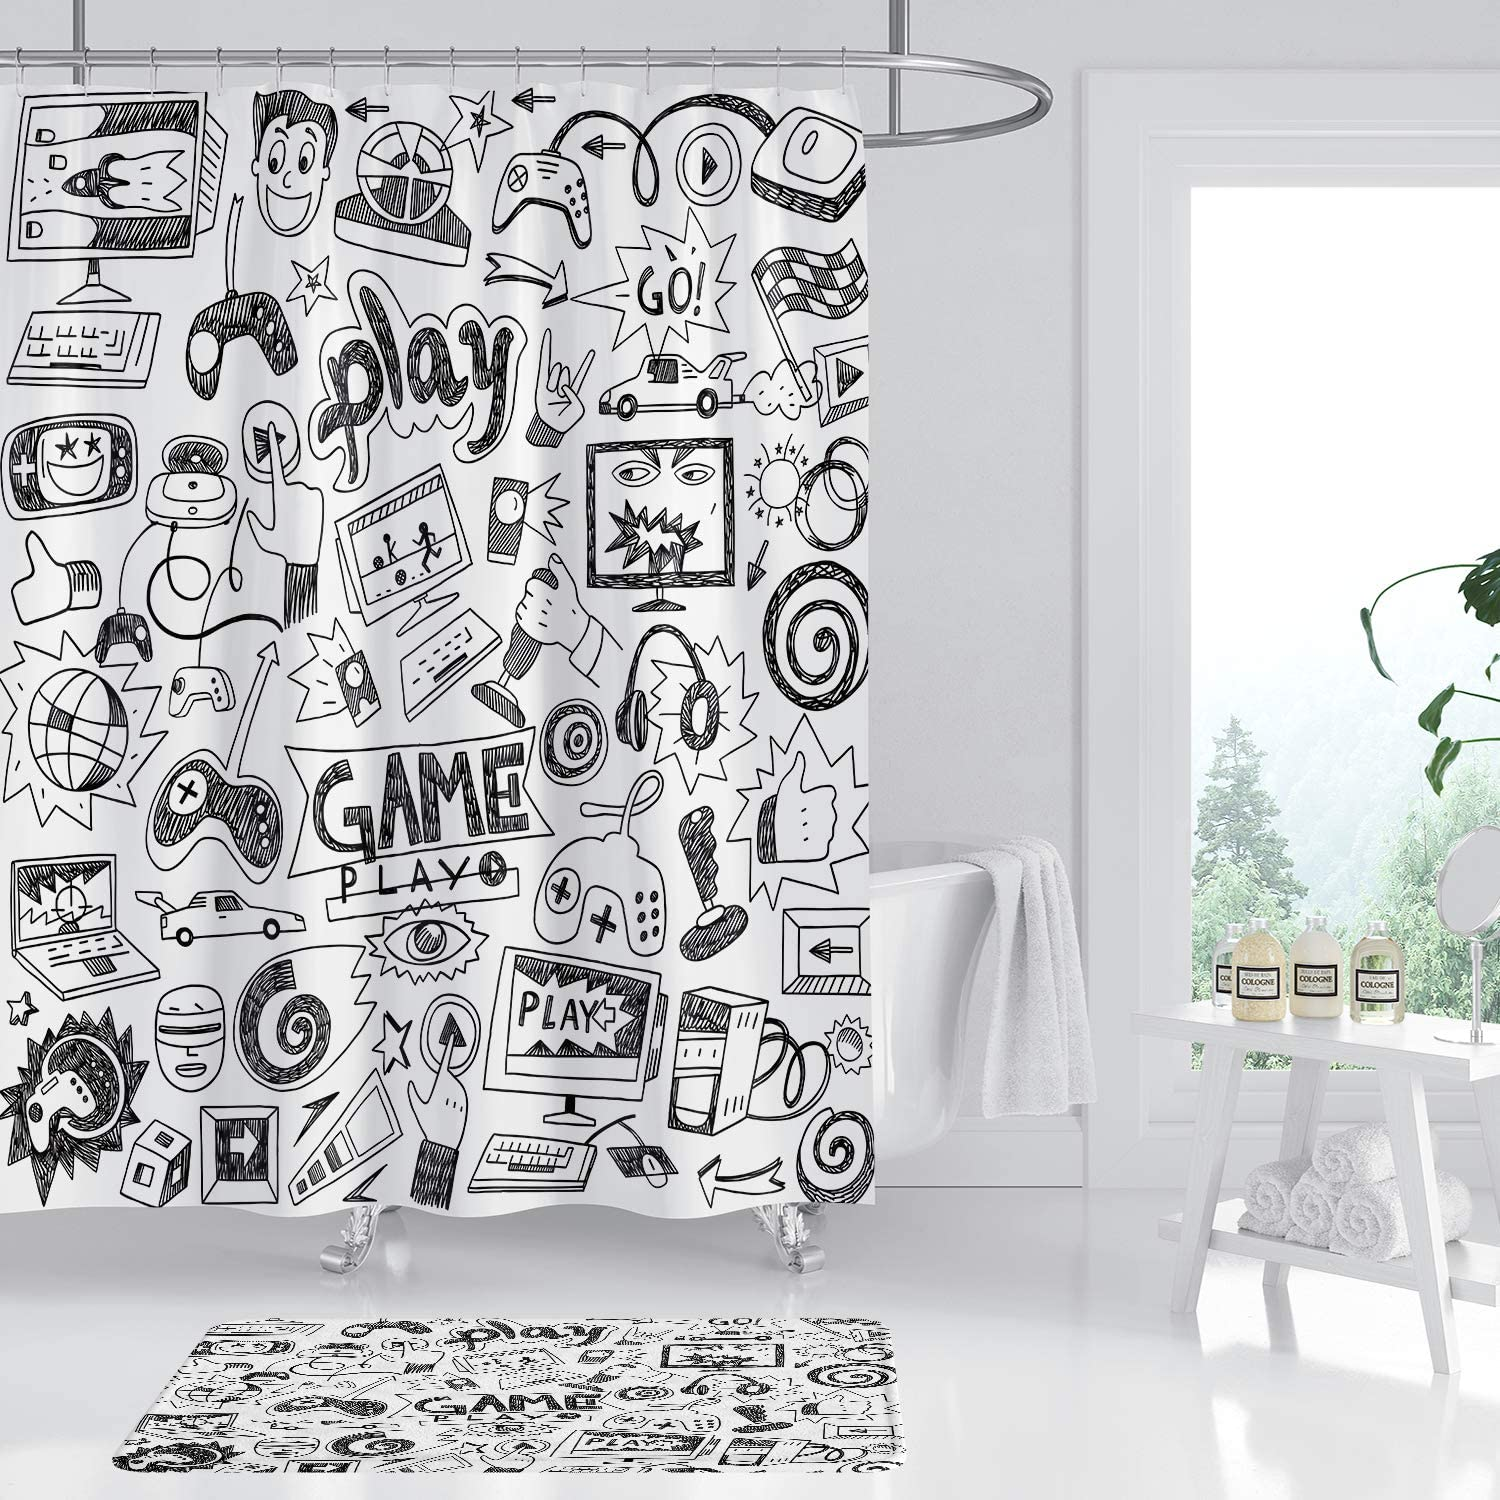 Borylin Game Boys Shower Curtain Mat Set 2 Pcs Non-Slip Rug Kids Black and White Graffiti 12 Pack Plastic Hooks Woman Lady Female Art Print Bathroom